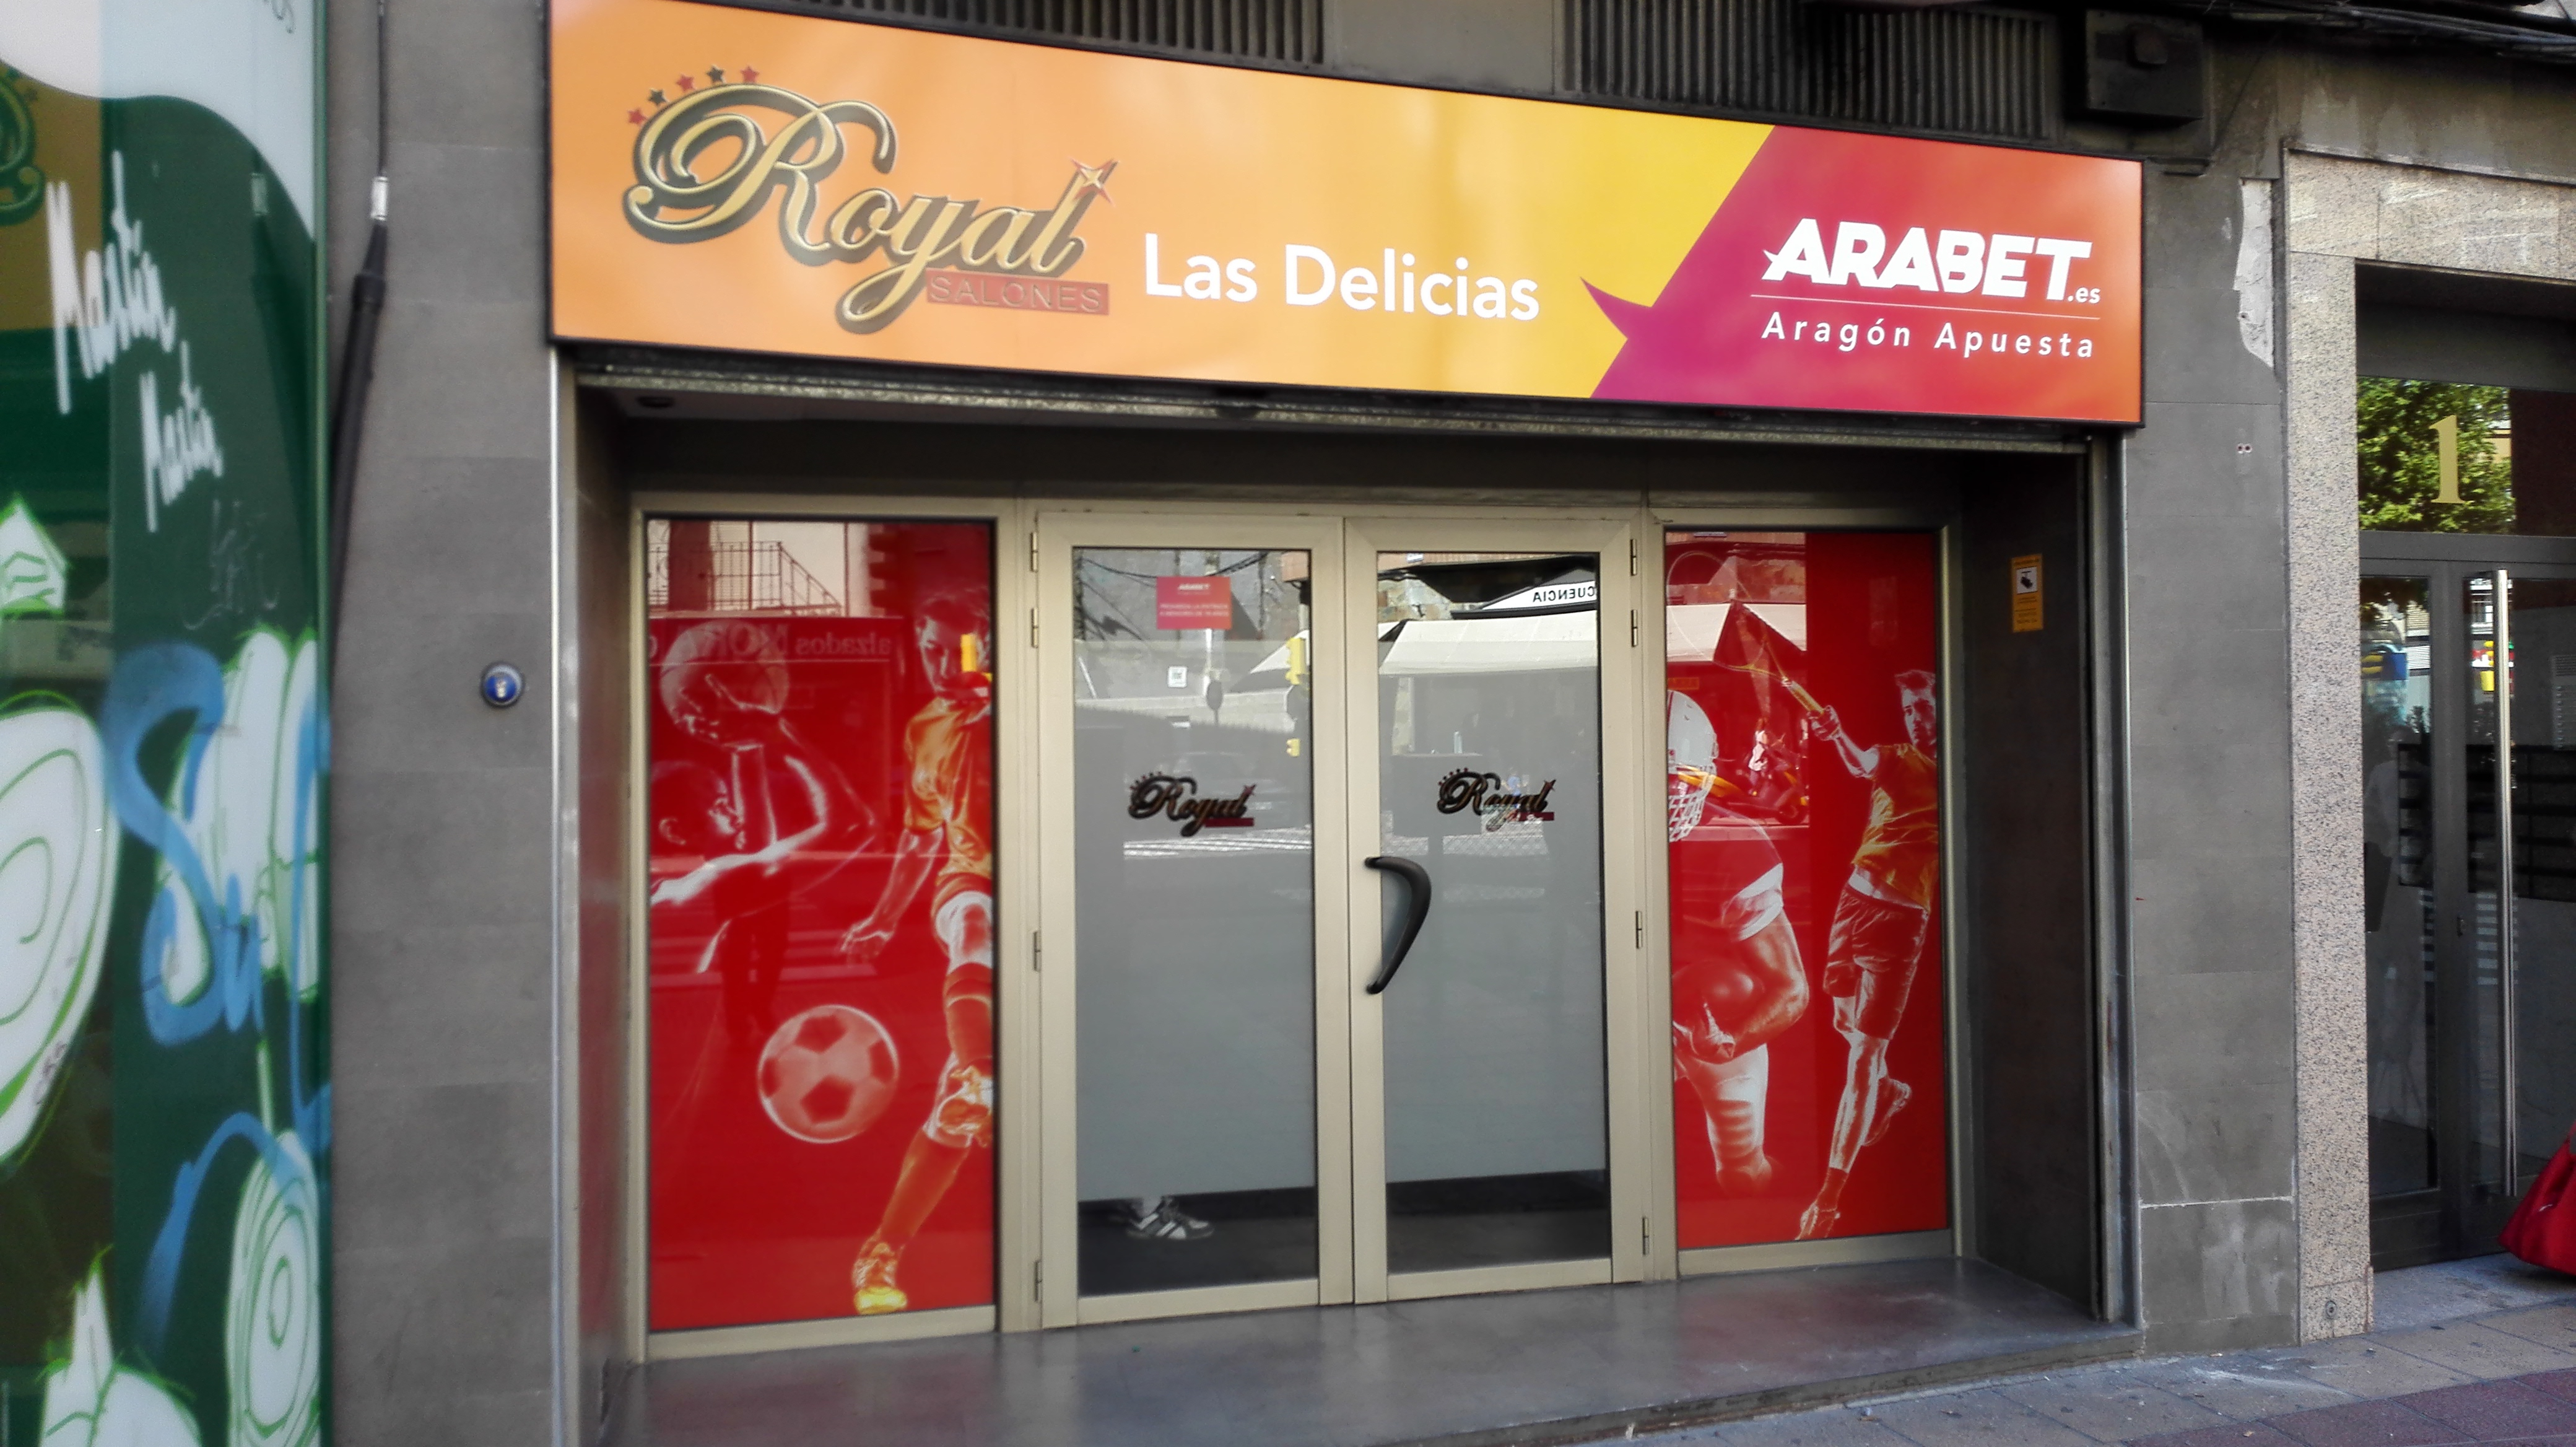 local-arabet-delicias-royal-1